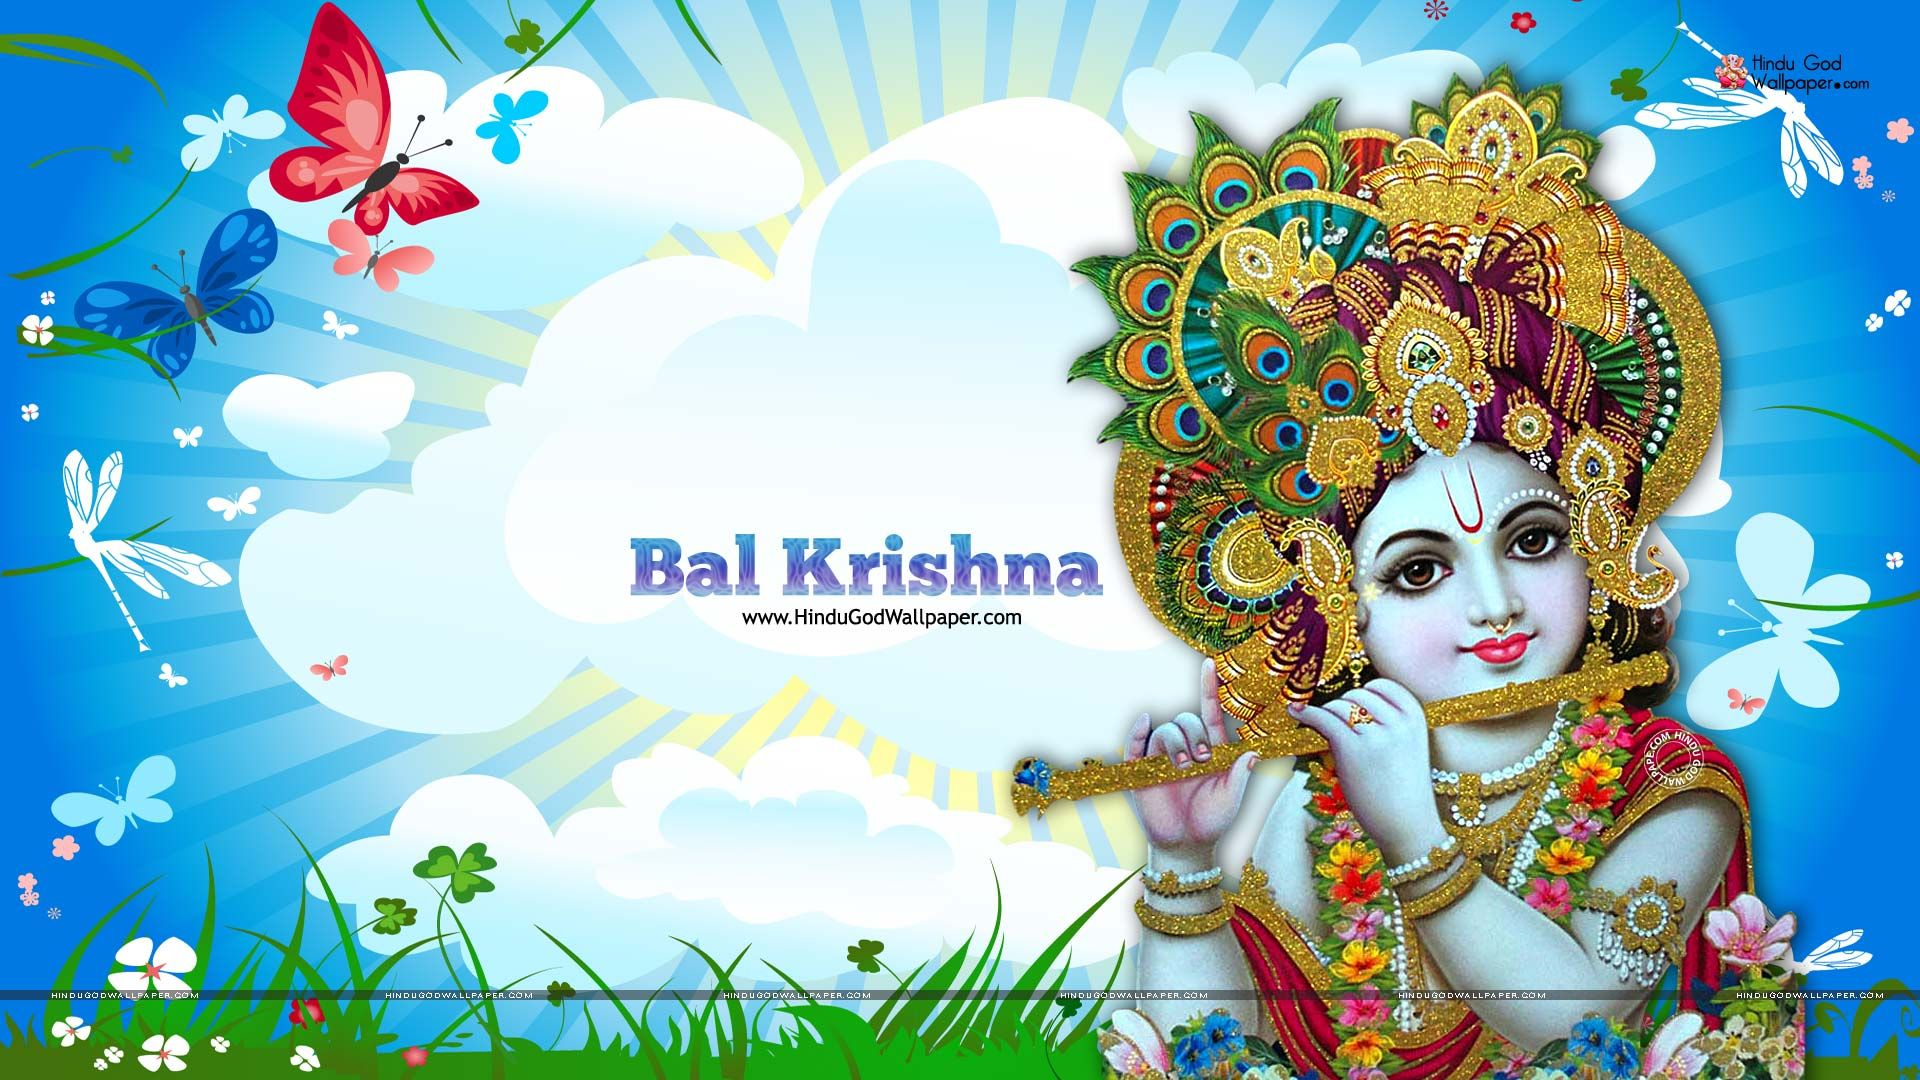 Bal Krishna Hd Wallpapers Free Download With Full Size Lord Bal Krishna Hd Photos Images In 1366x768 1280x1 Bal Krishna Krishna Wallpaper Hd Wallpapers 1080p